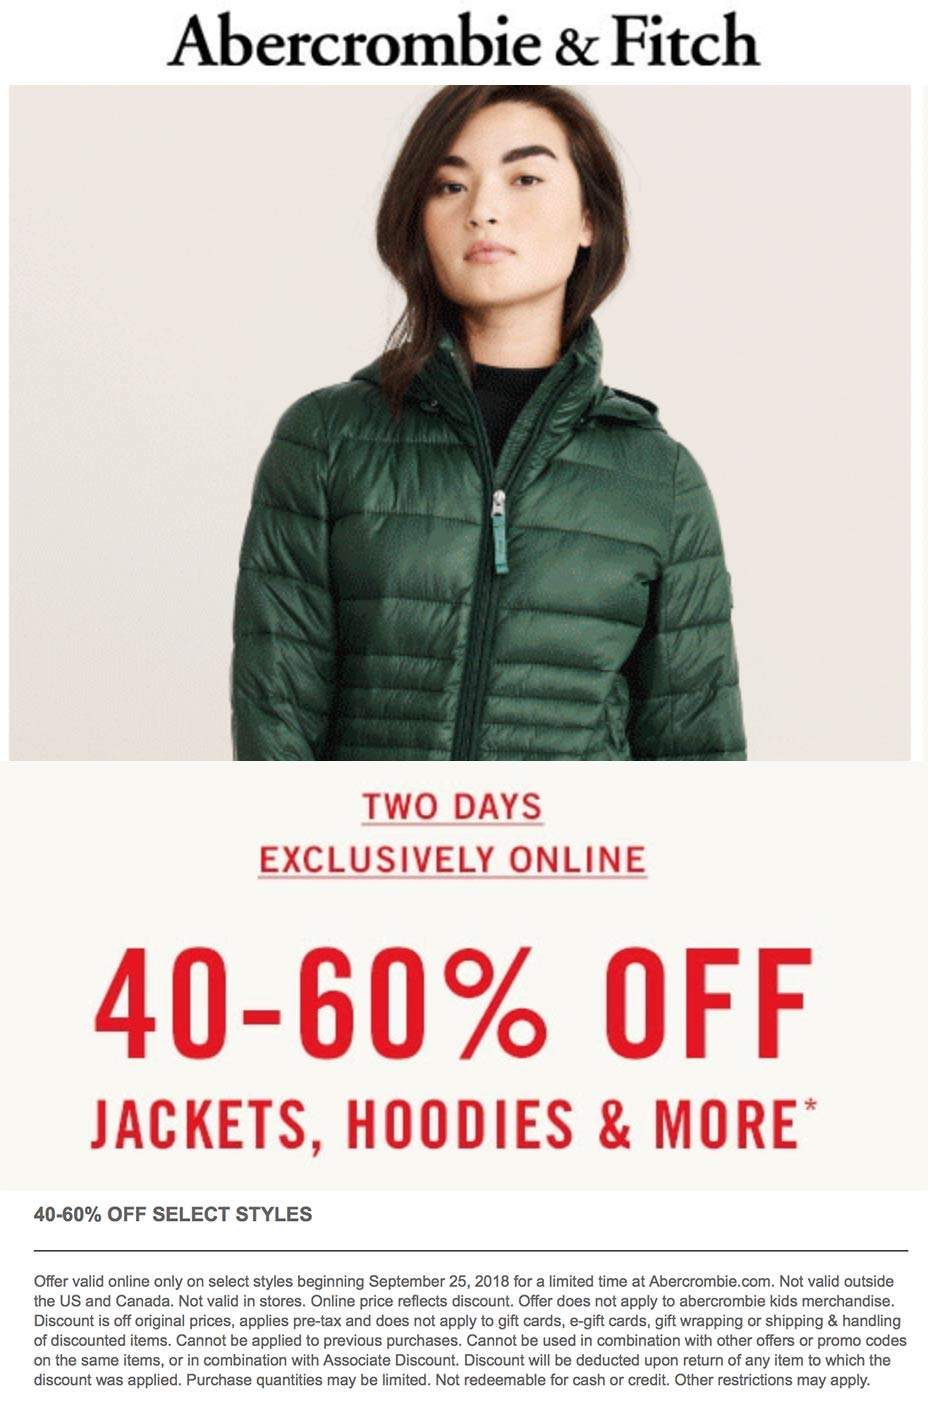 Abercrombie & Fitch Coupon July 2019 40-60% off jackets & hoodies online today at Abercrombie & Fitch